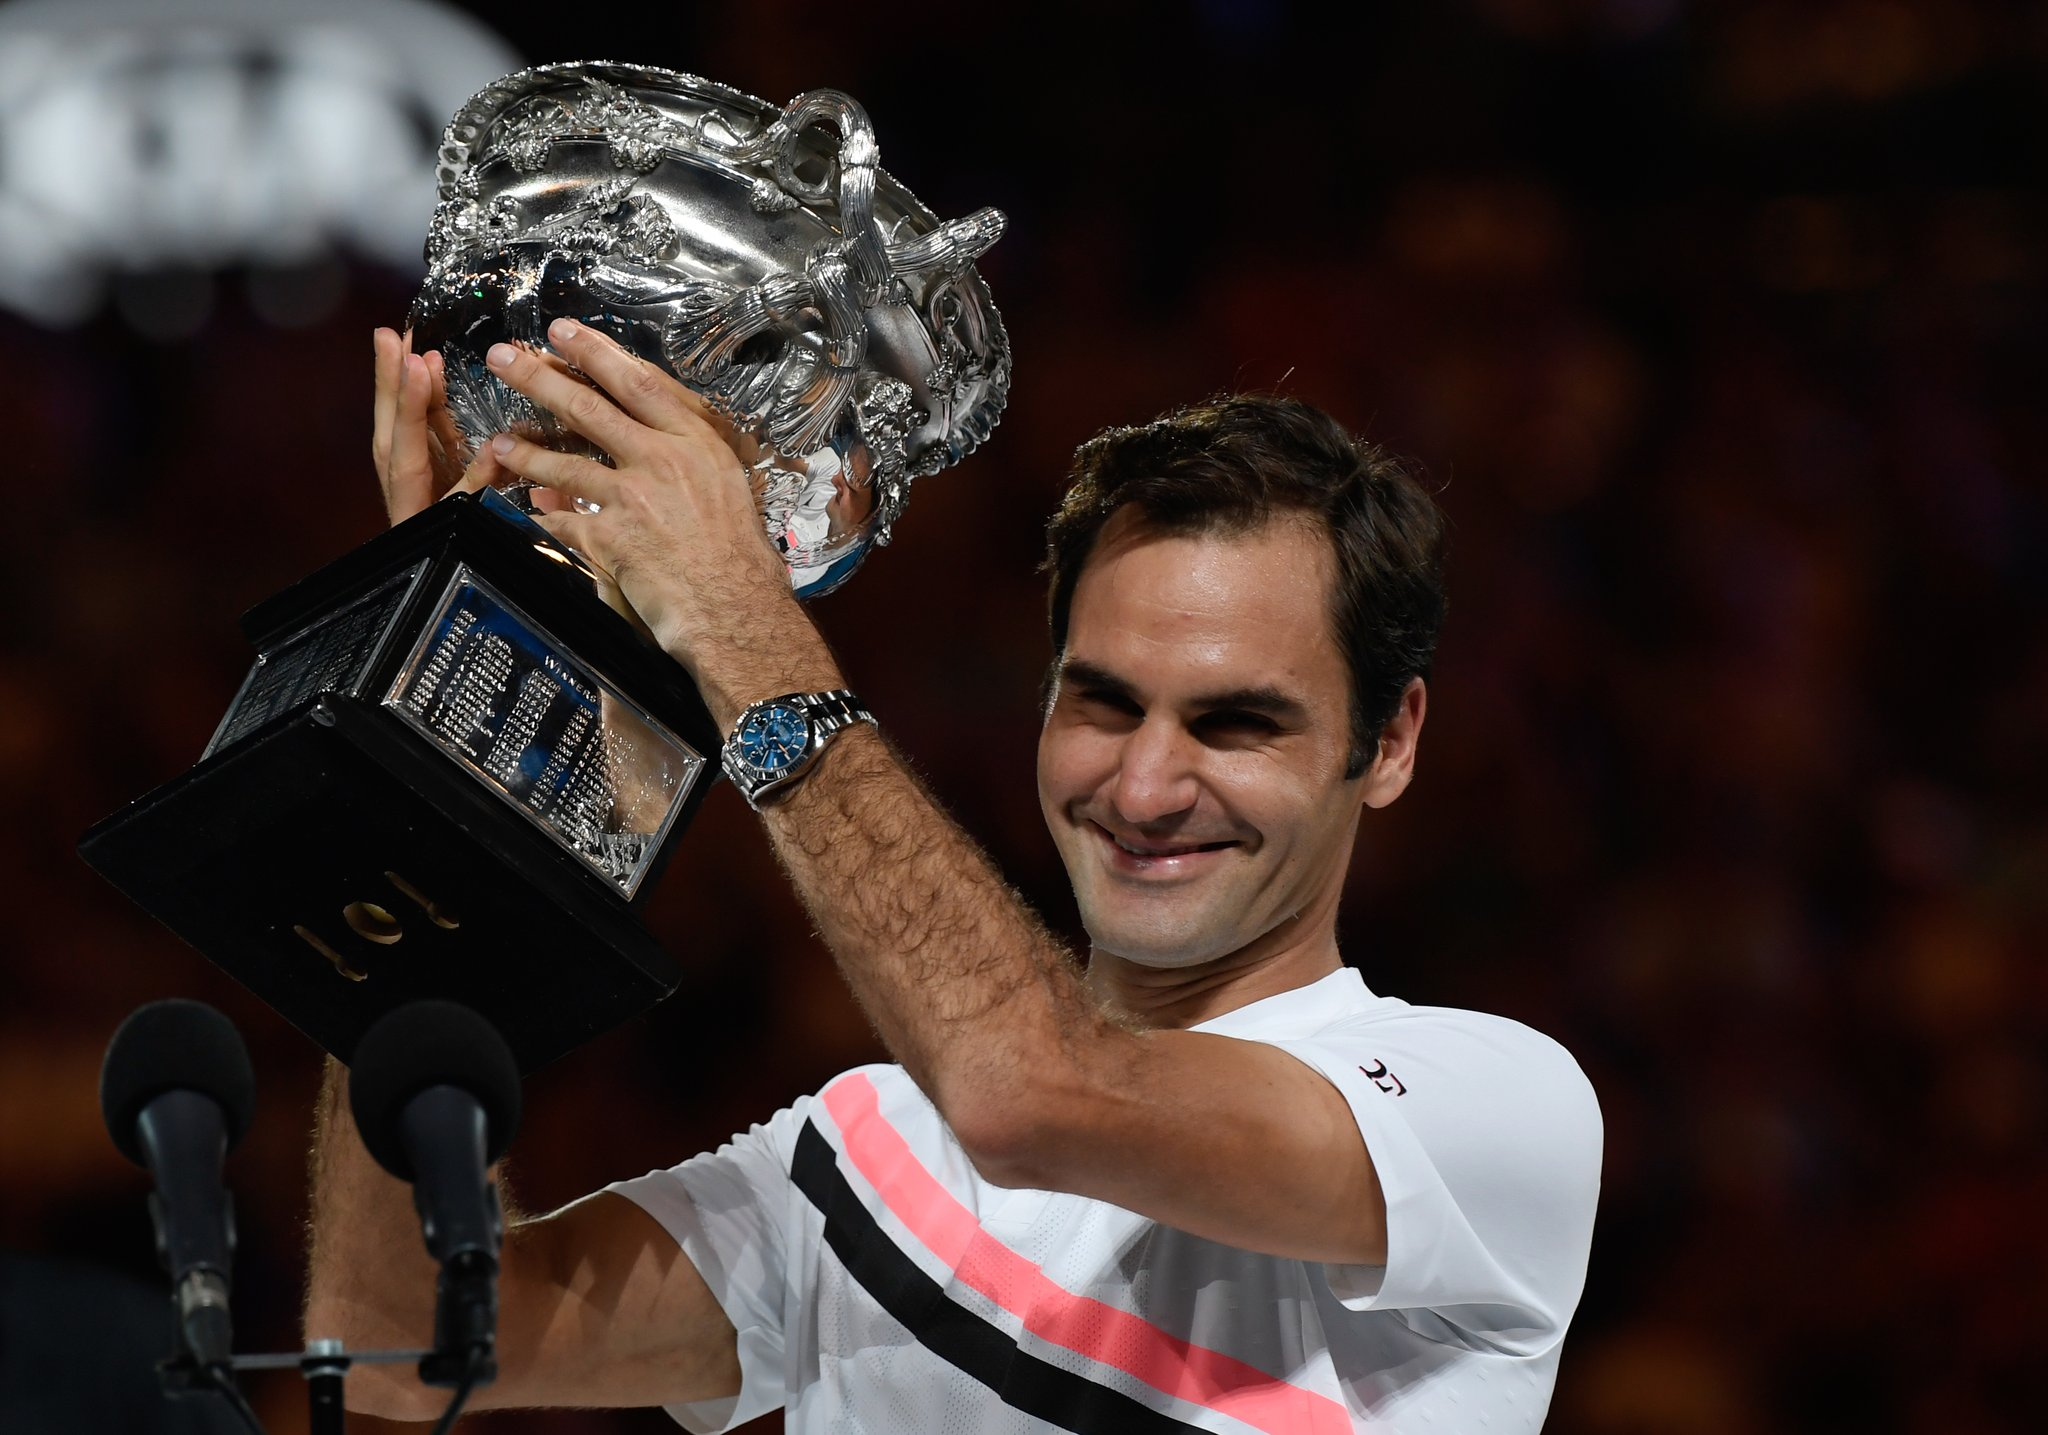 UNSTOPPABLE! Federer Beats Cilic To Win 20th Grand Slam Title